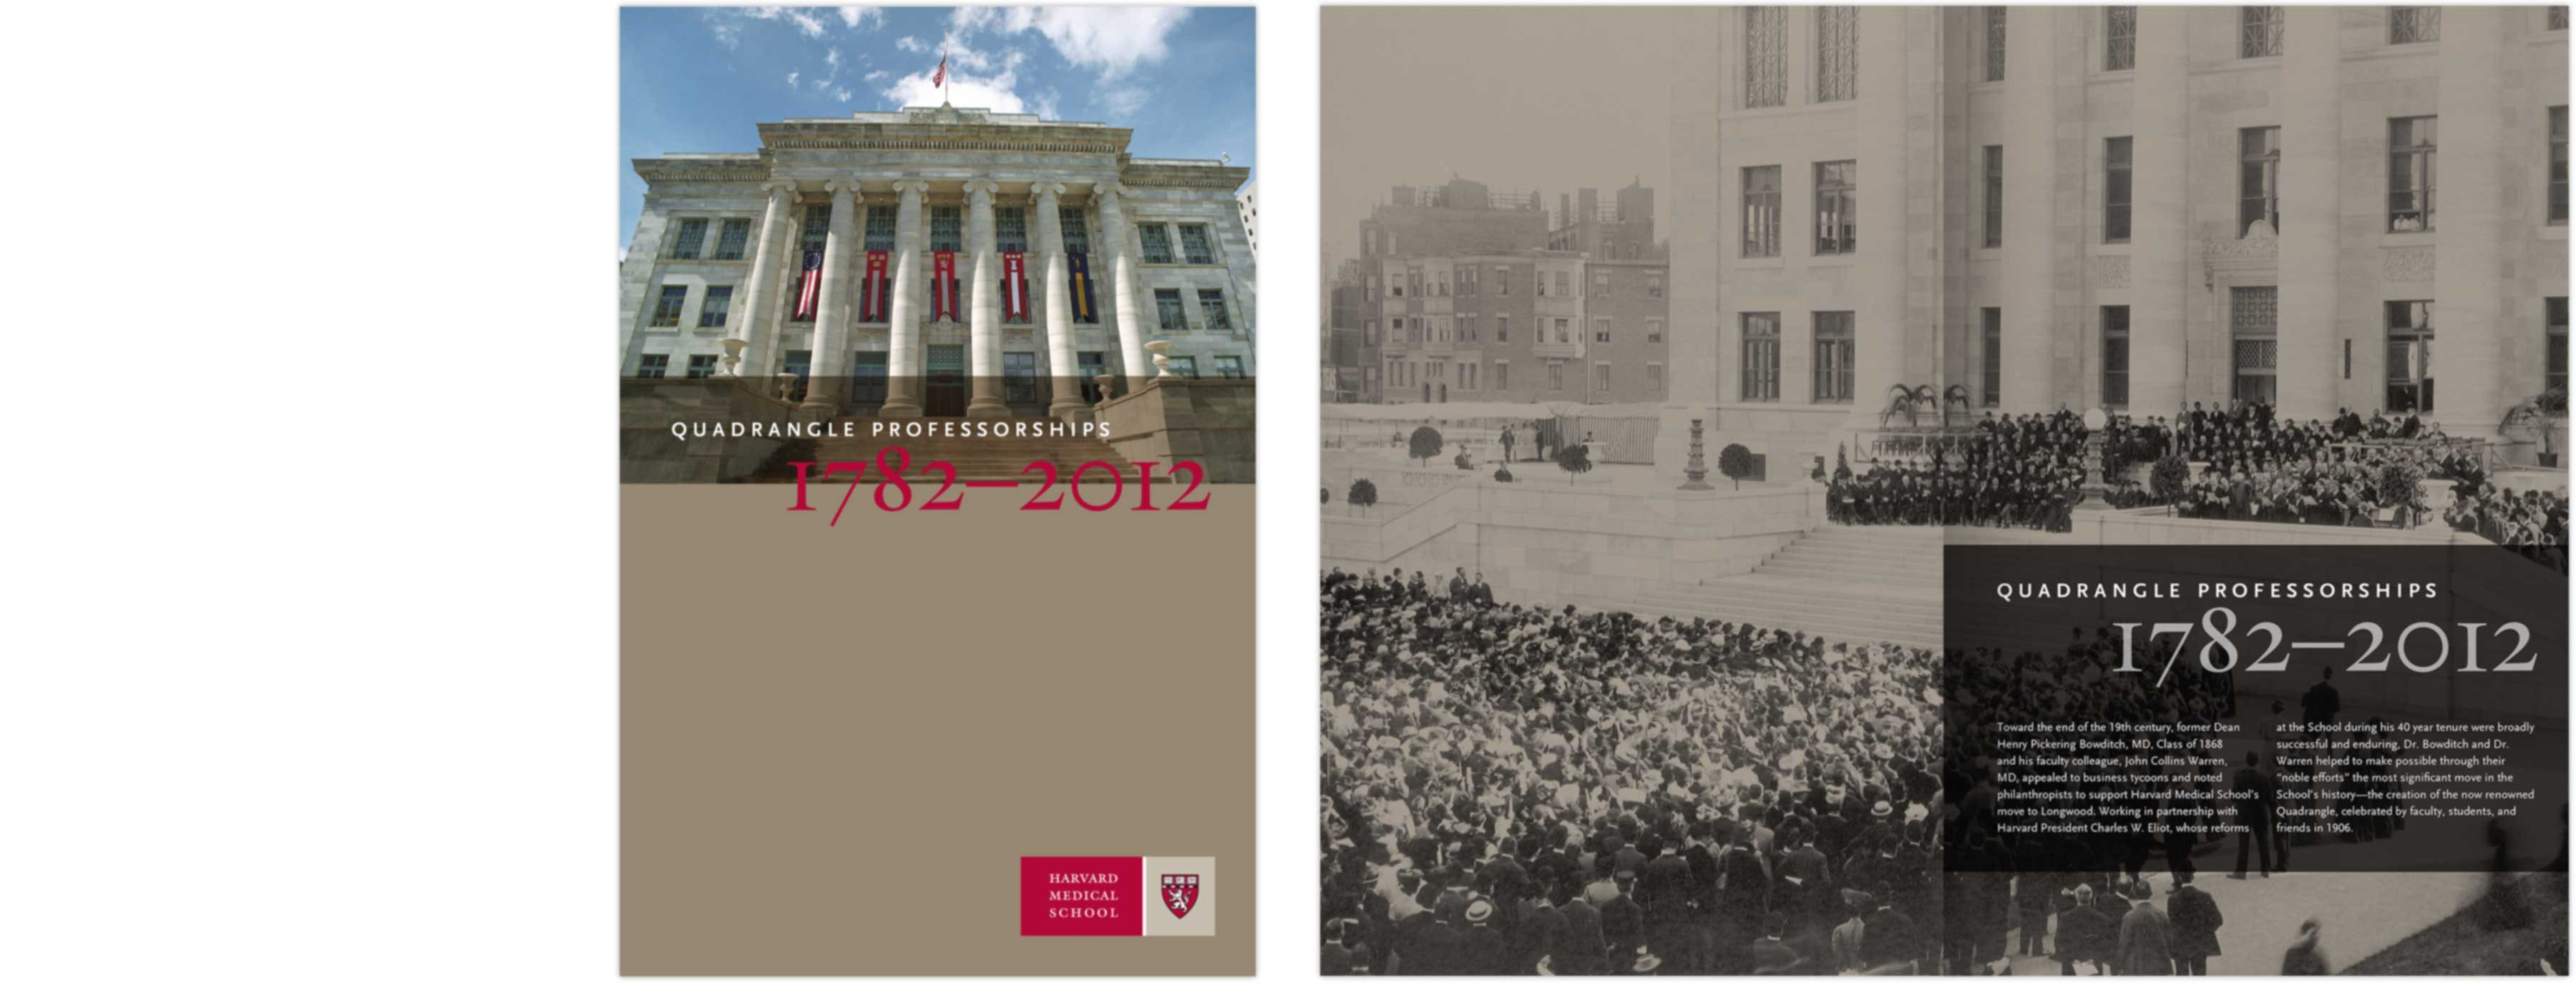 Harvard Medical School Quadrangle Professorships booklet